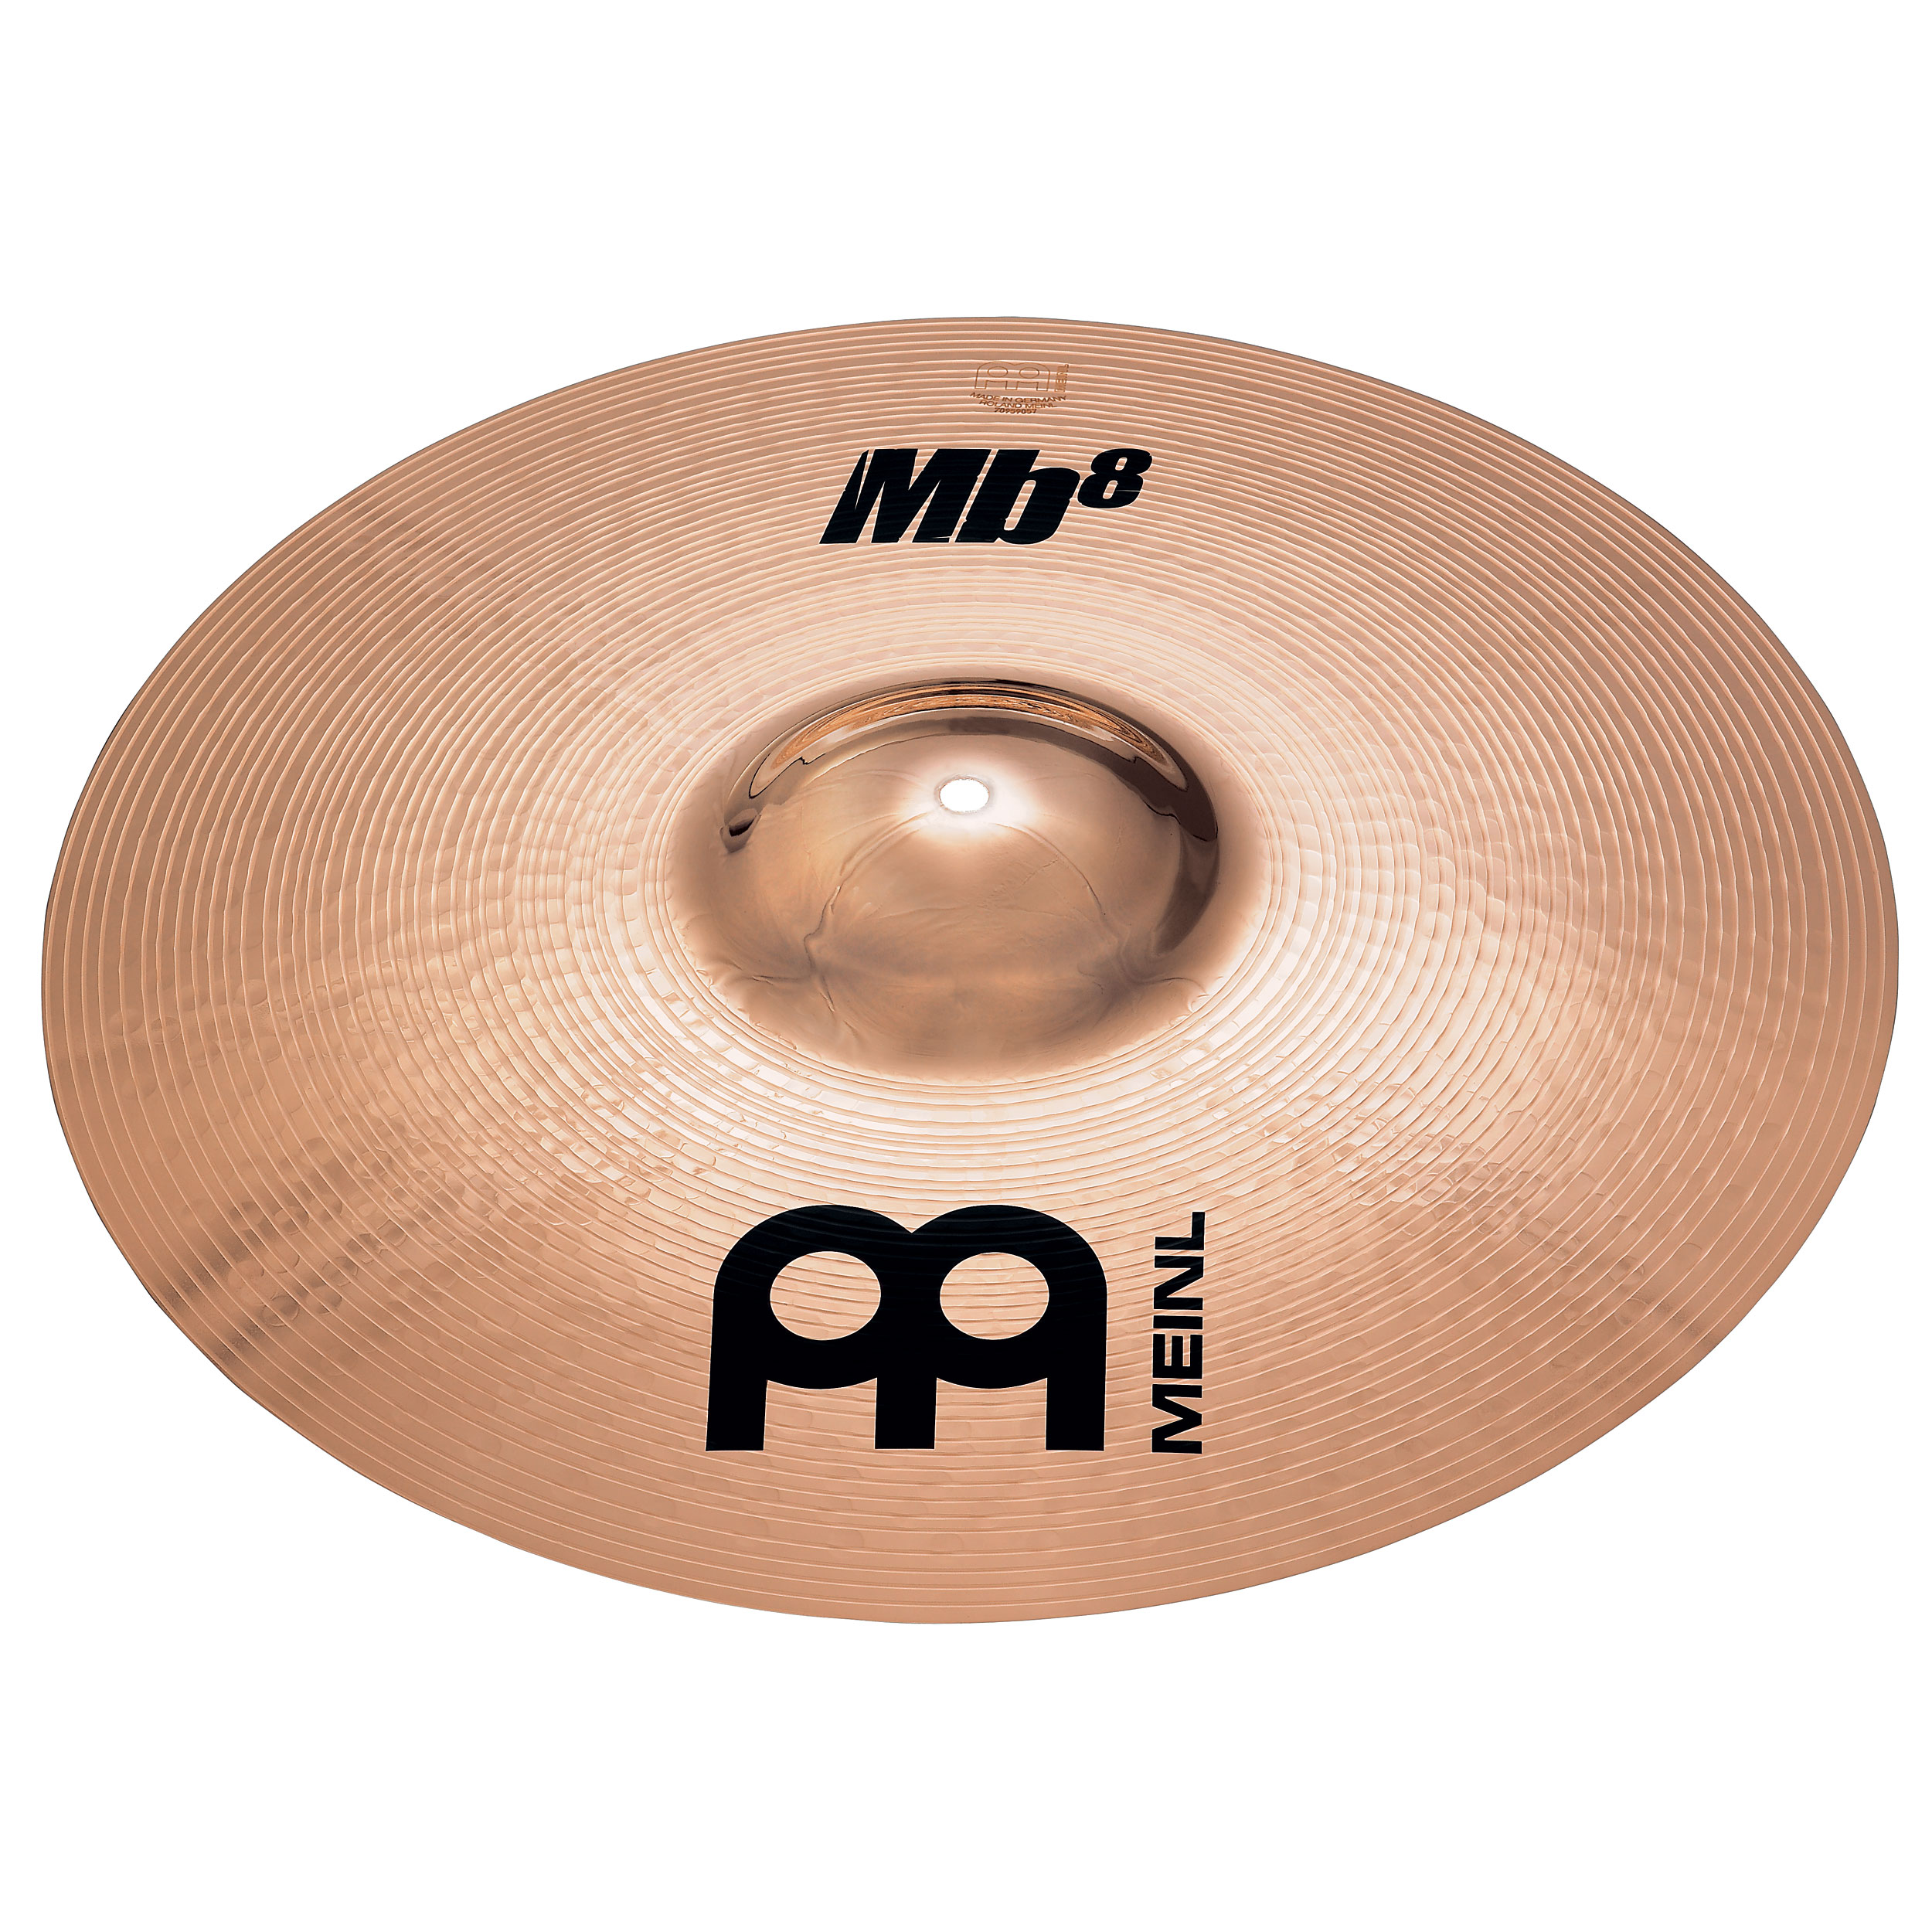 "Meinl 20"" Mb8 Heavy Ride Cymbal"